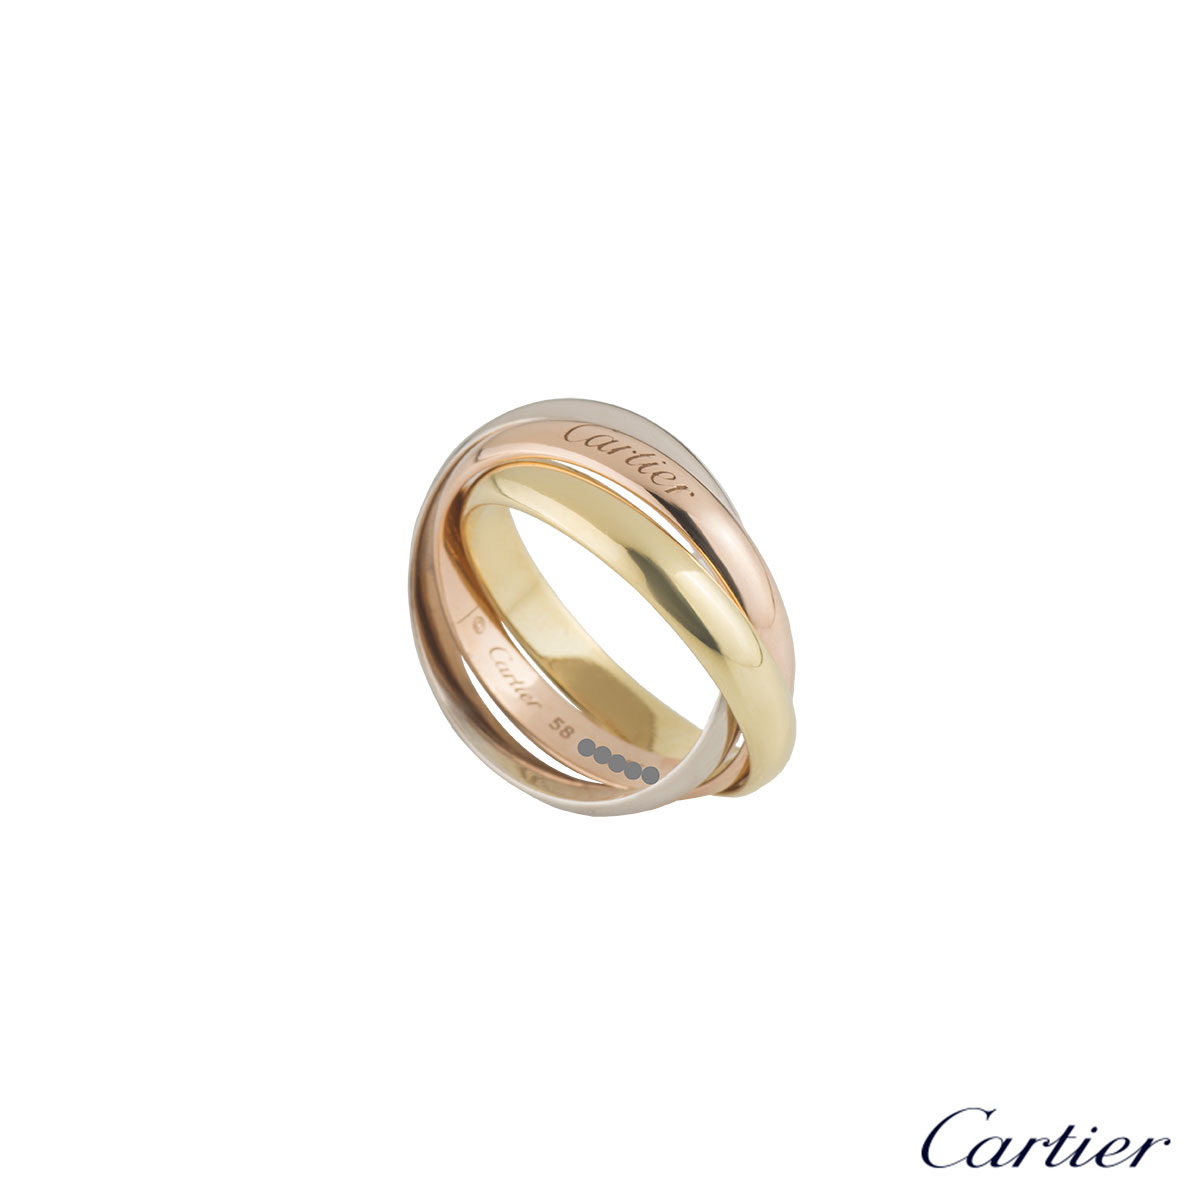 Cartier Tri-Colour Trinity Ring Size 58 B4086158